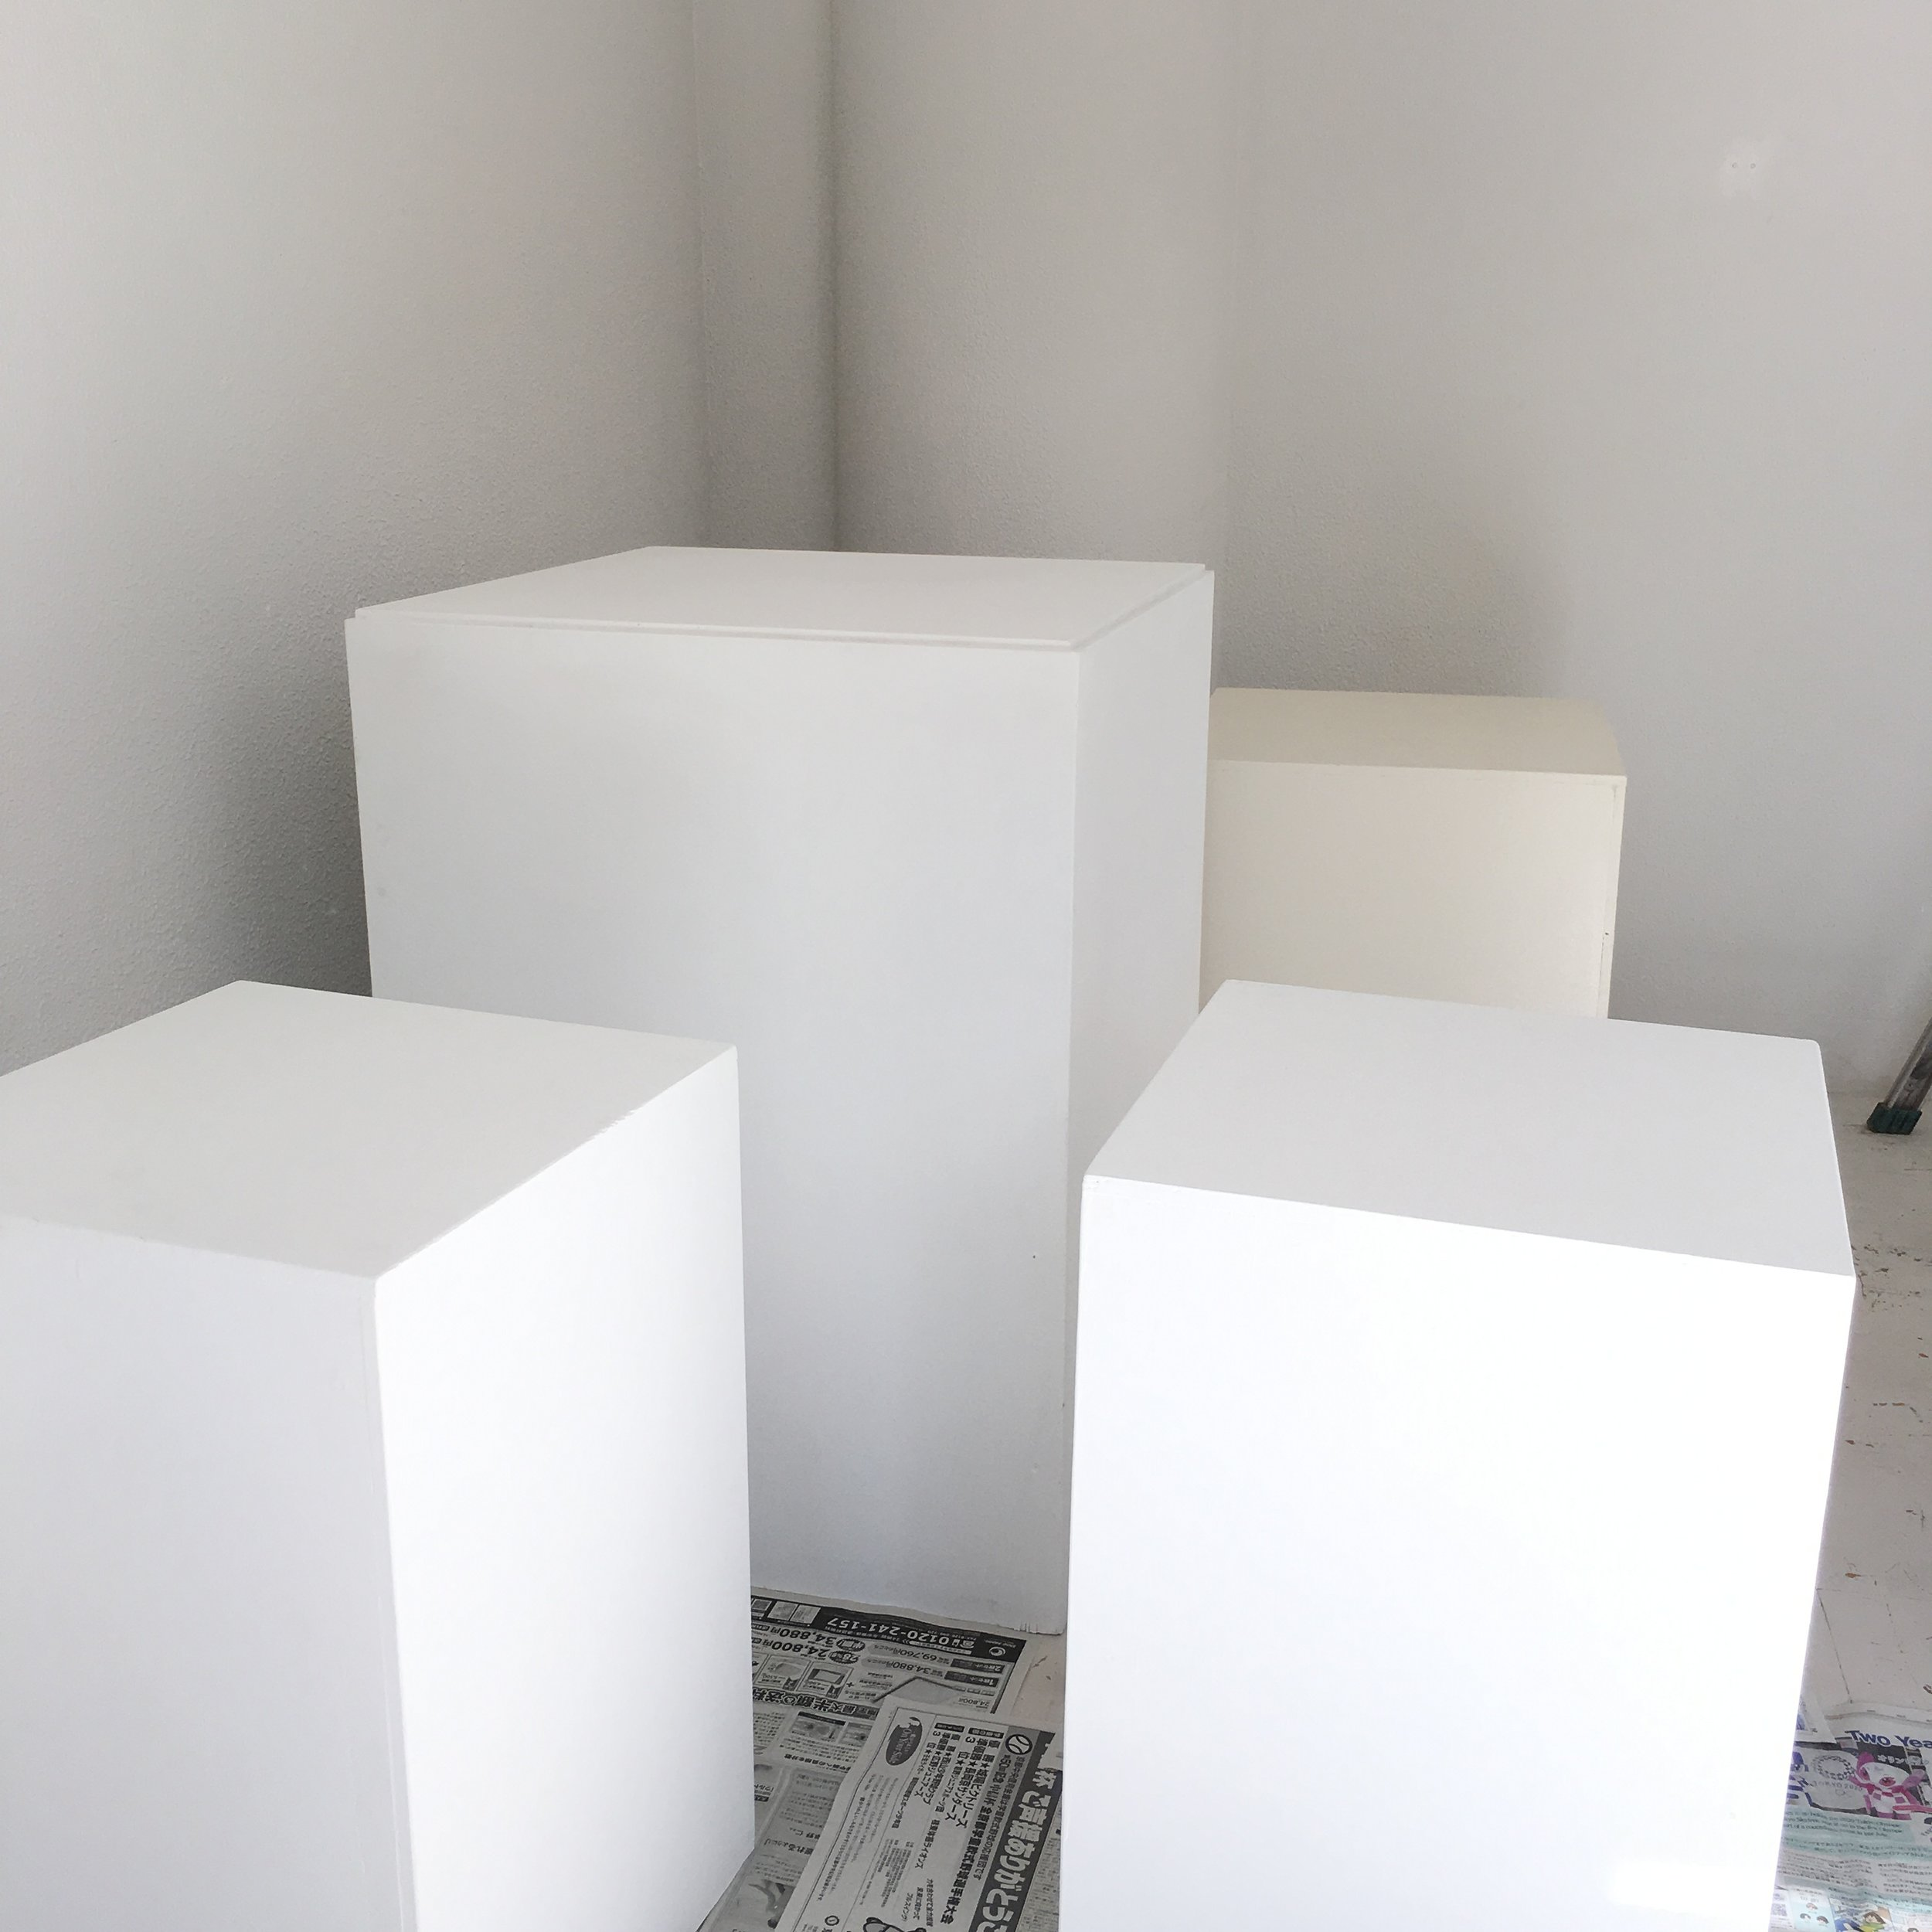 Late night cleaning the plinths.